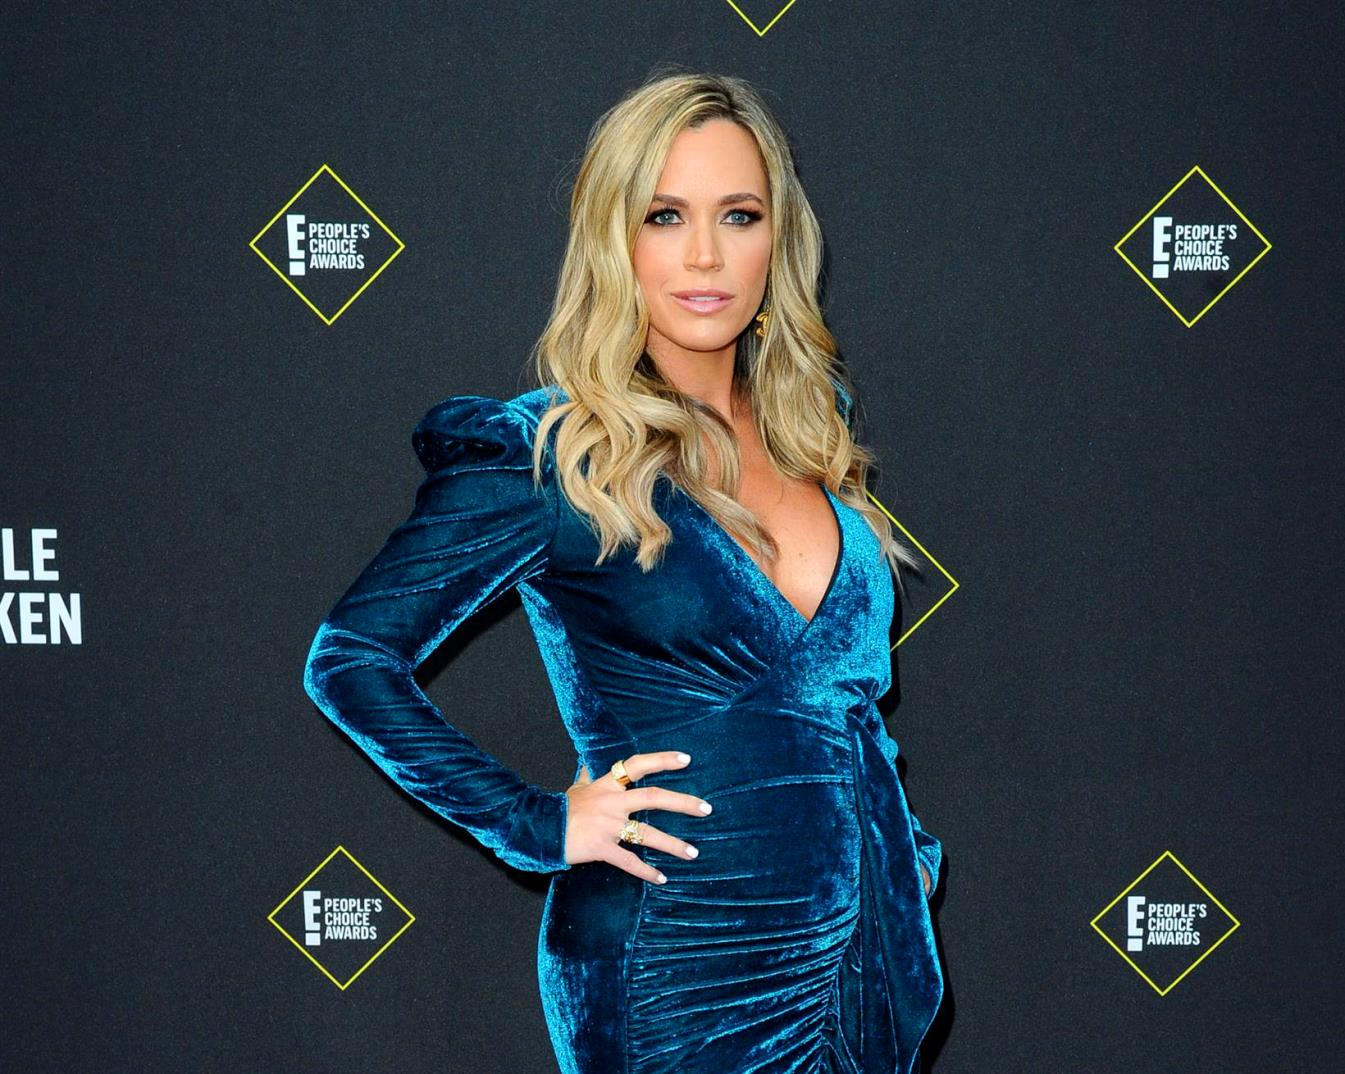 RHOBH Star Teddi Mellencamp 'Heartbroken' After Losing Dog Tragically to an 'Accident' While Out of Town, Receives Support From Co-Stars